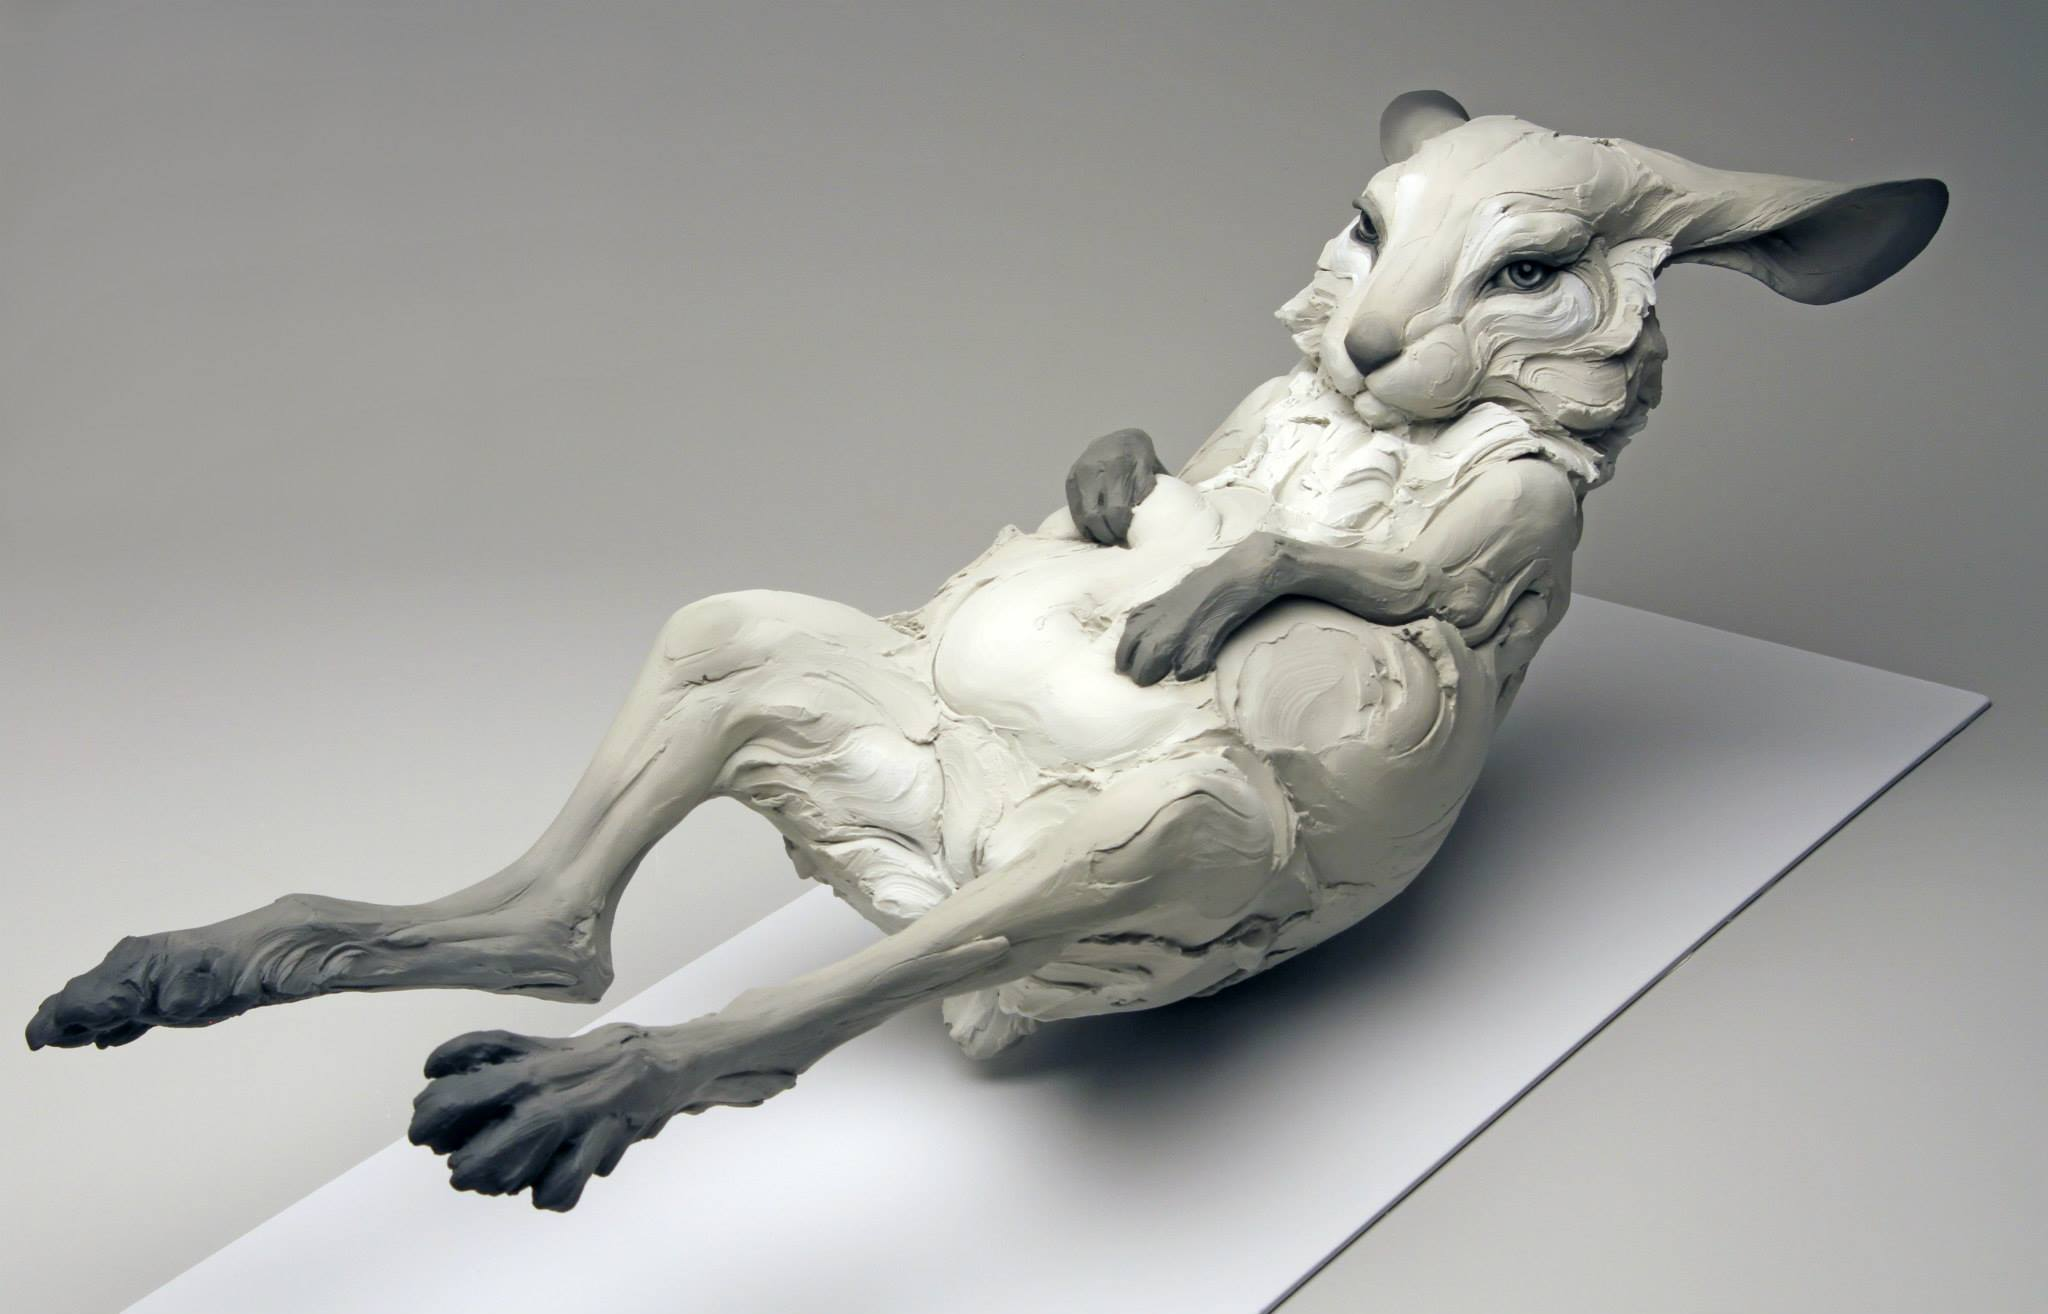 Beth Cavener – Haunted sculptures 2015